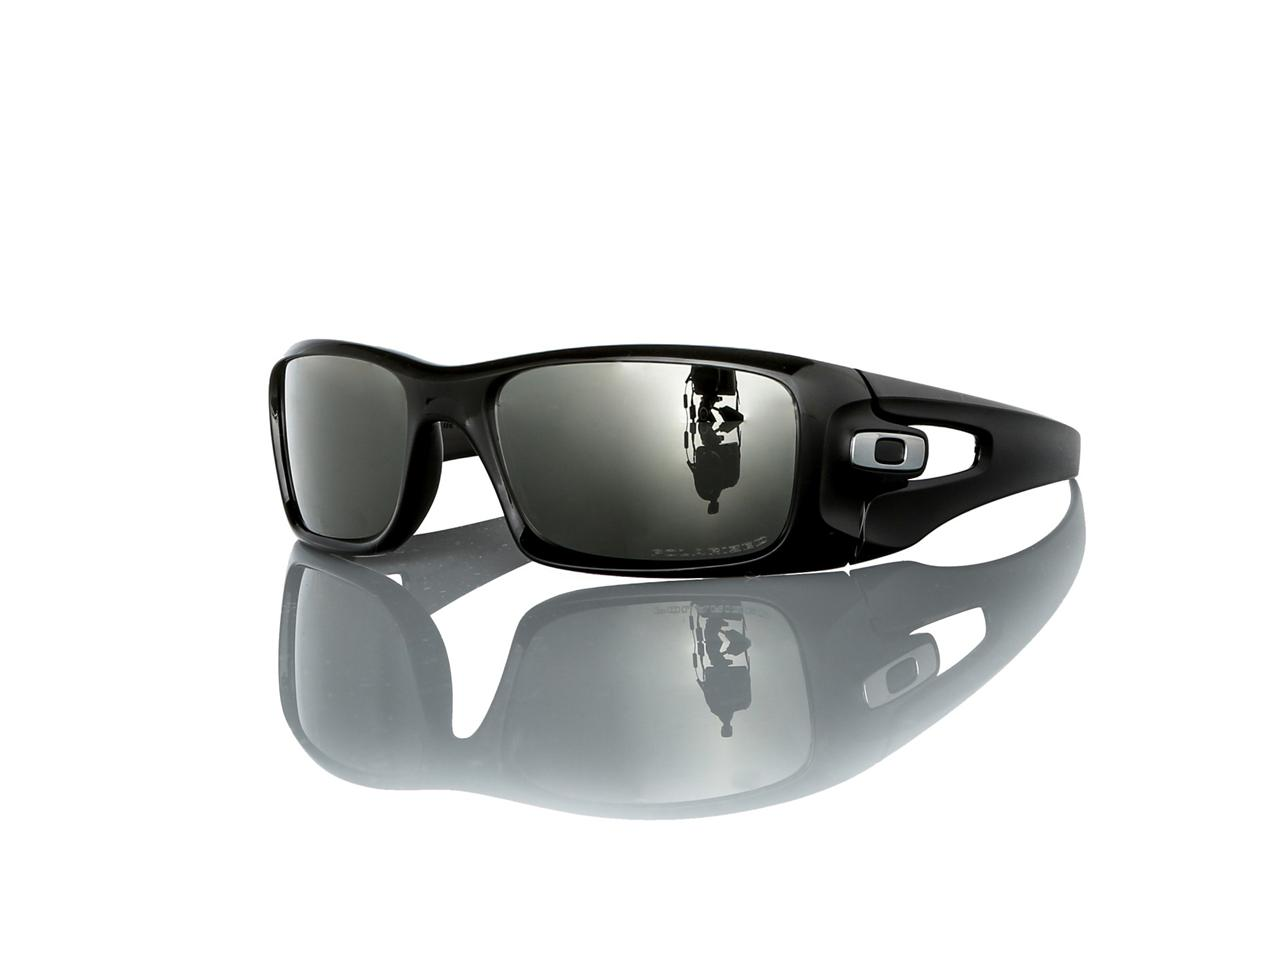 new oakley mens sunglasses  New Authentic Mens Oakley Sunglasses Crankcase 9165/01/02/07/08/09 ...